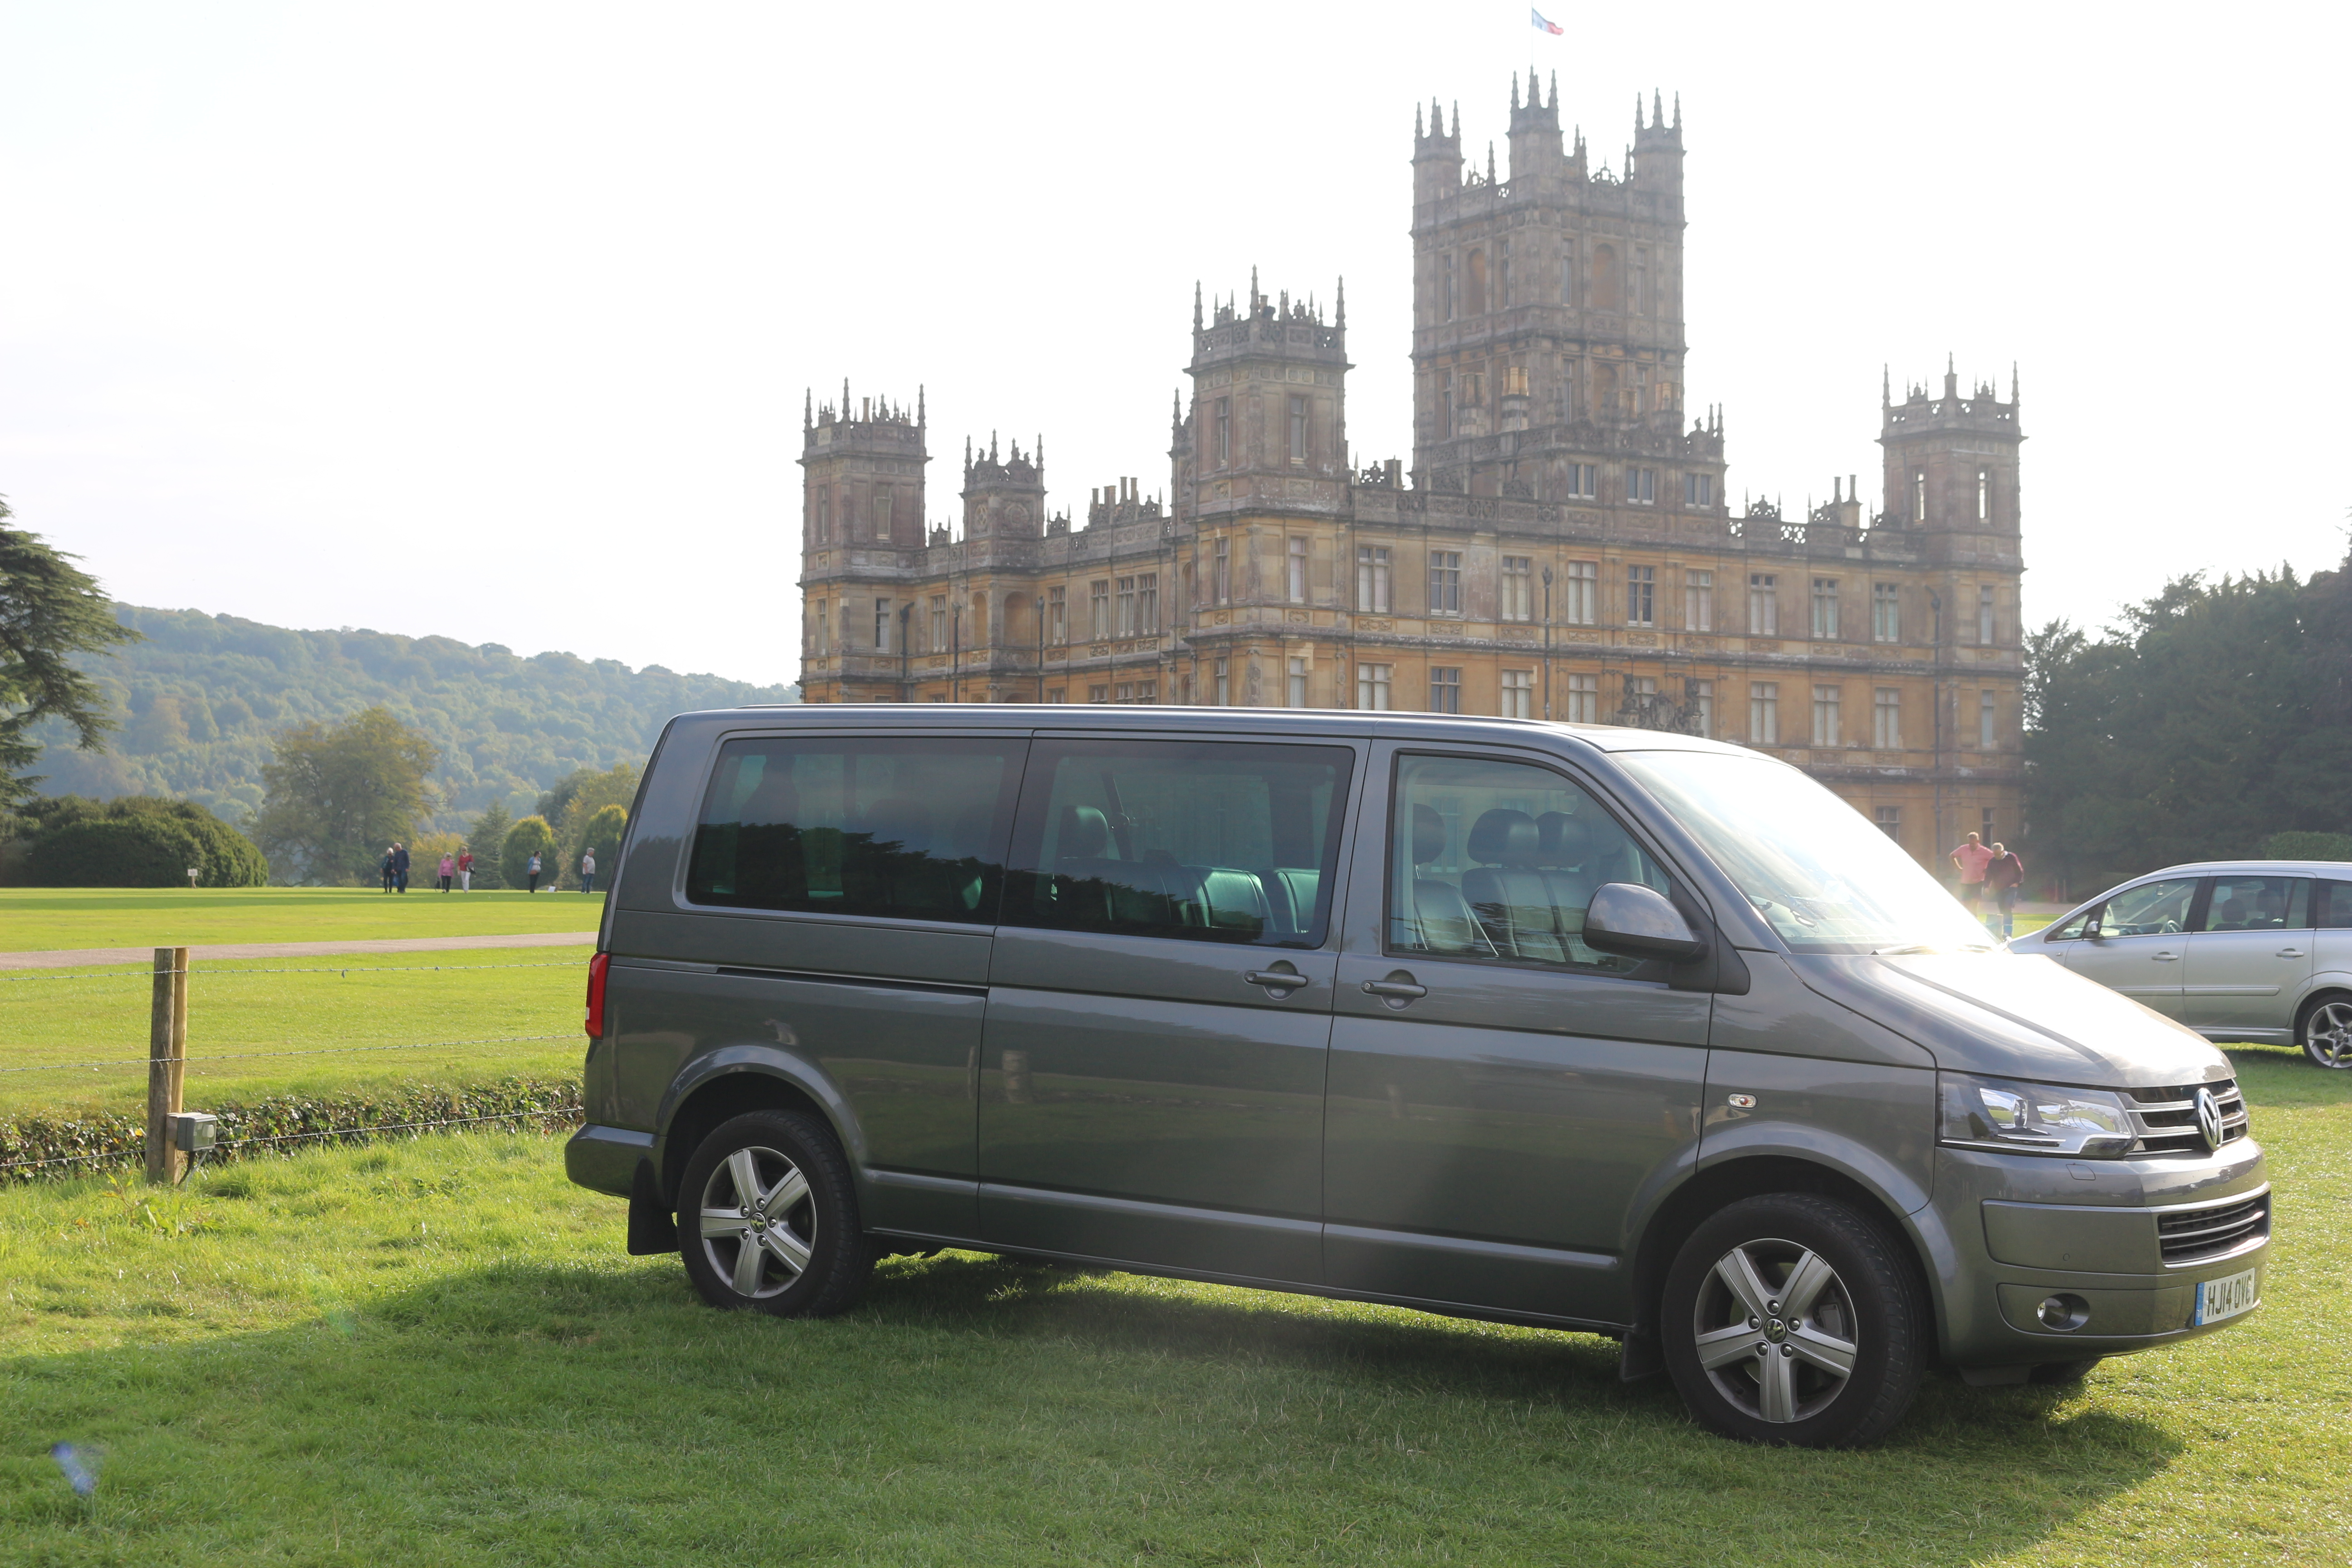 London Private Tours Luxury Guided Vehicle at Highclere Castle